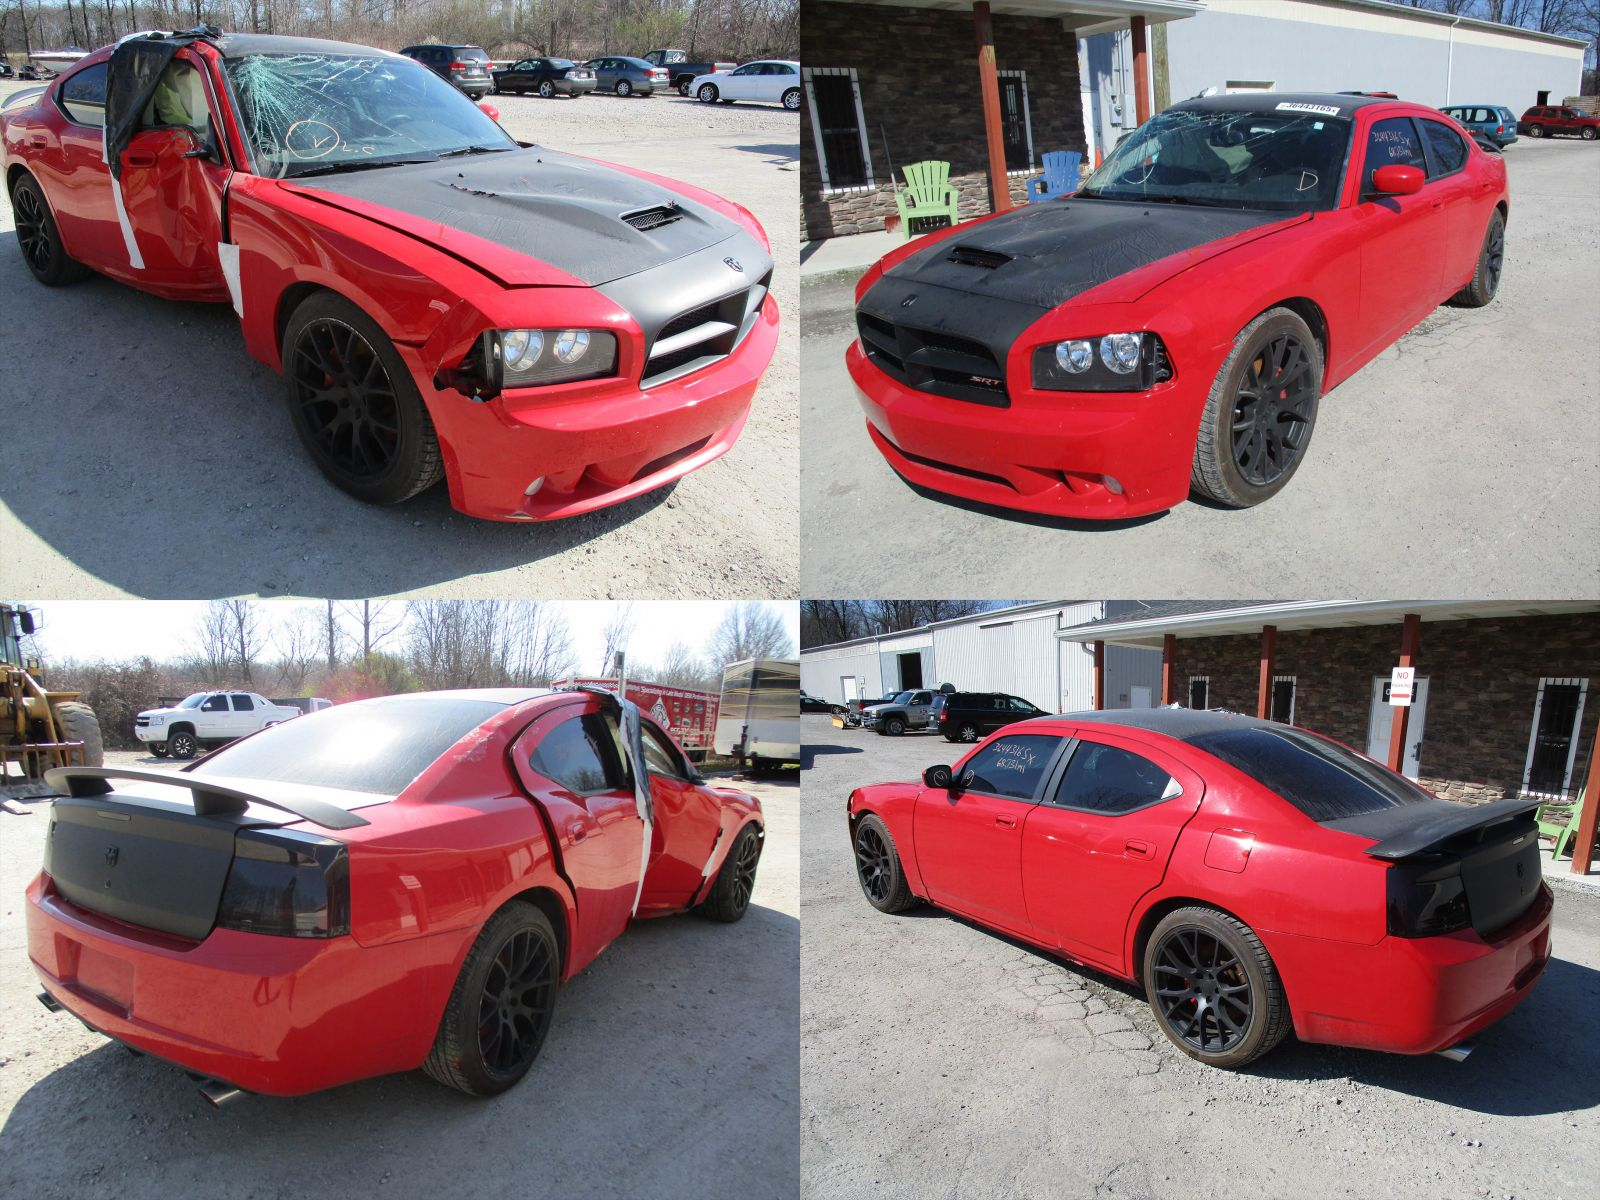 2008 Red Dodge Charger SRT-8 - Cleveland Power & Performance